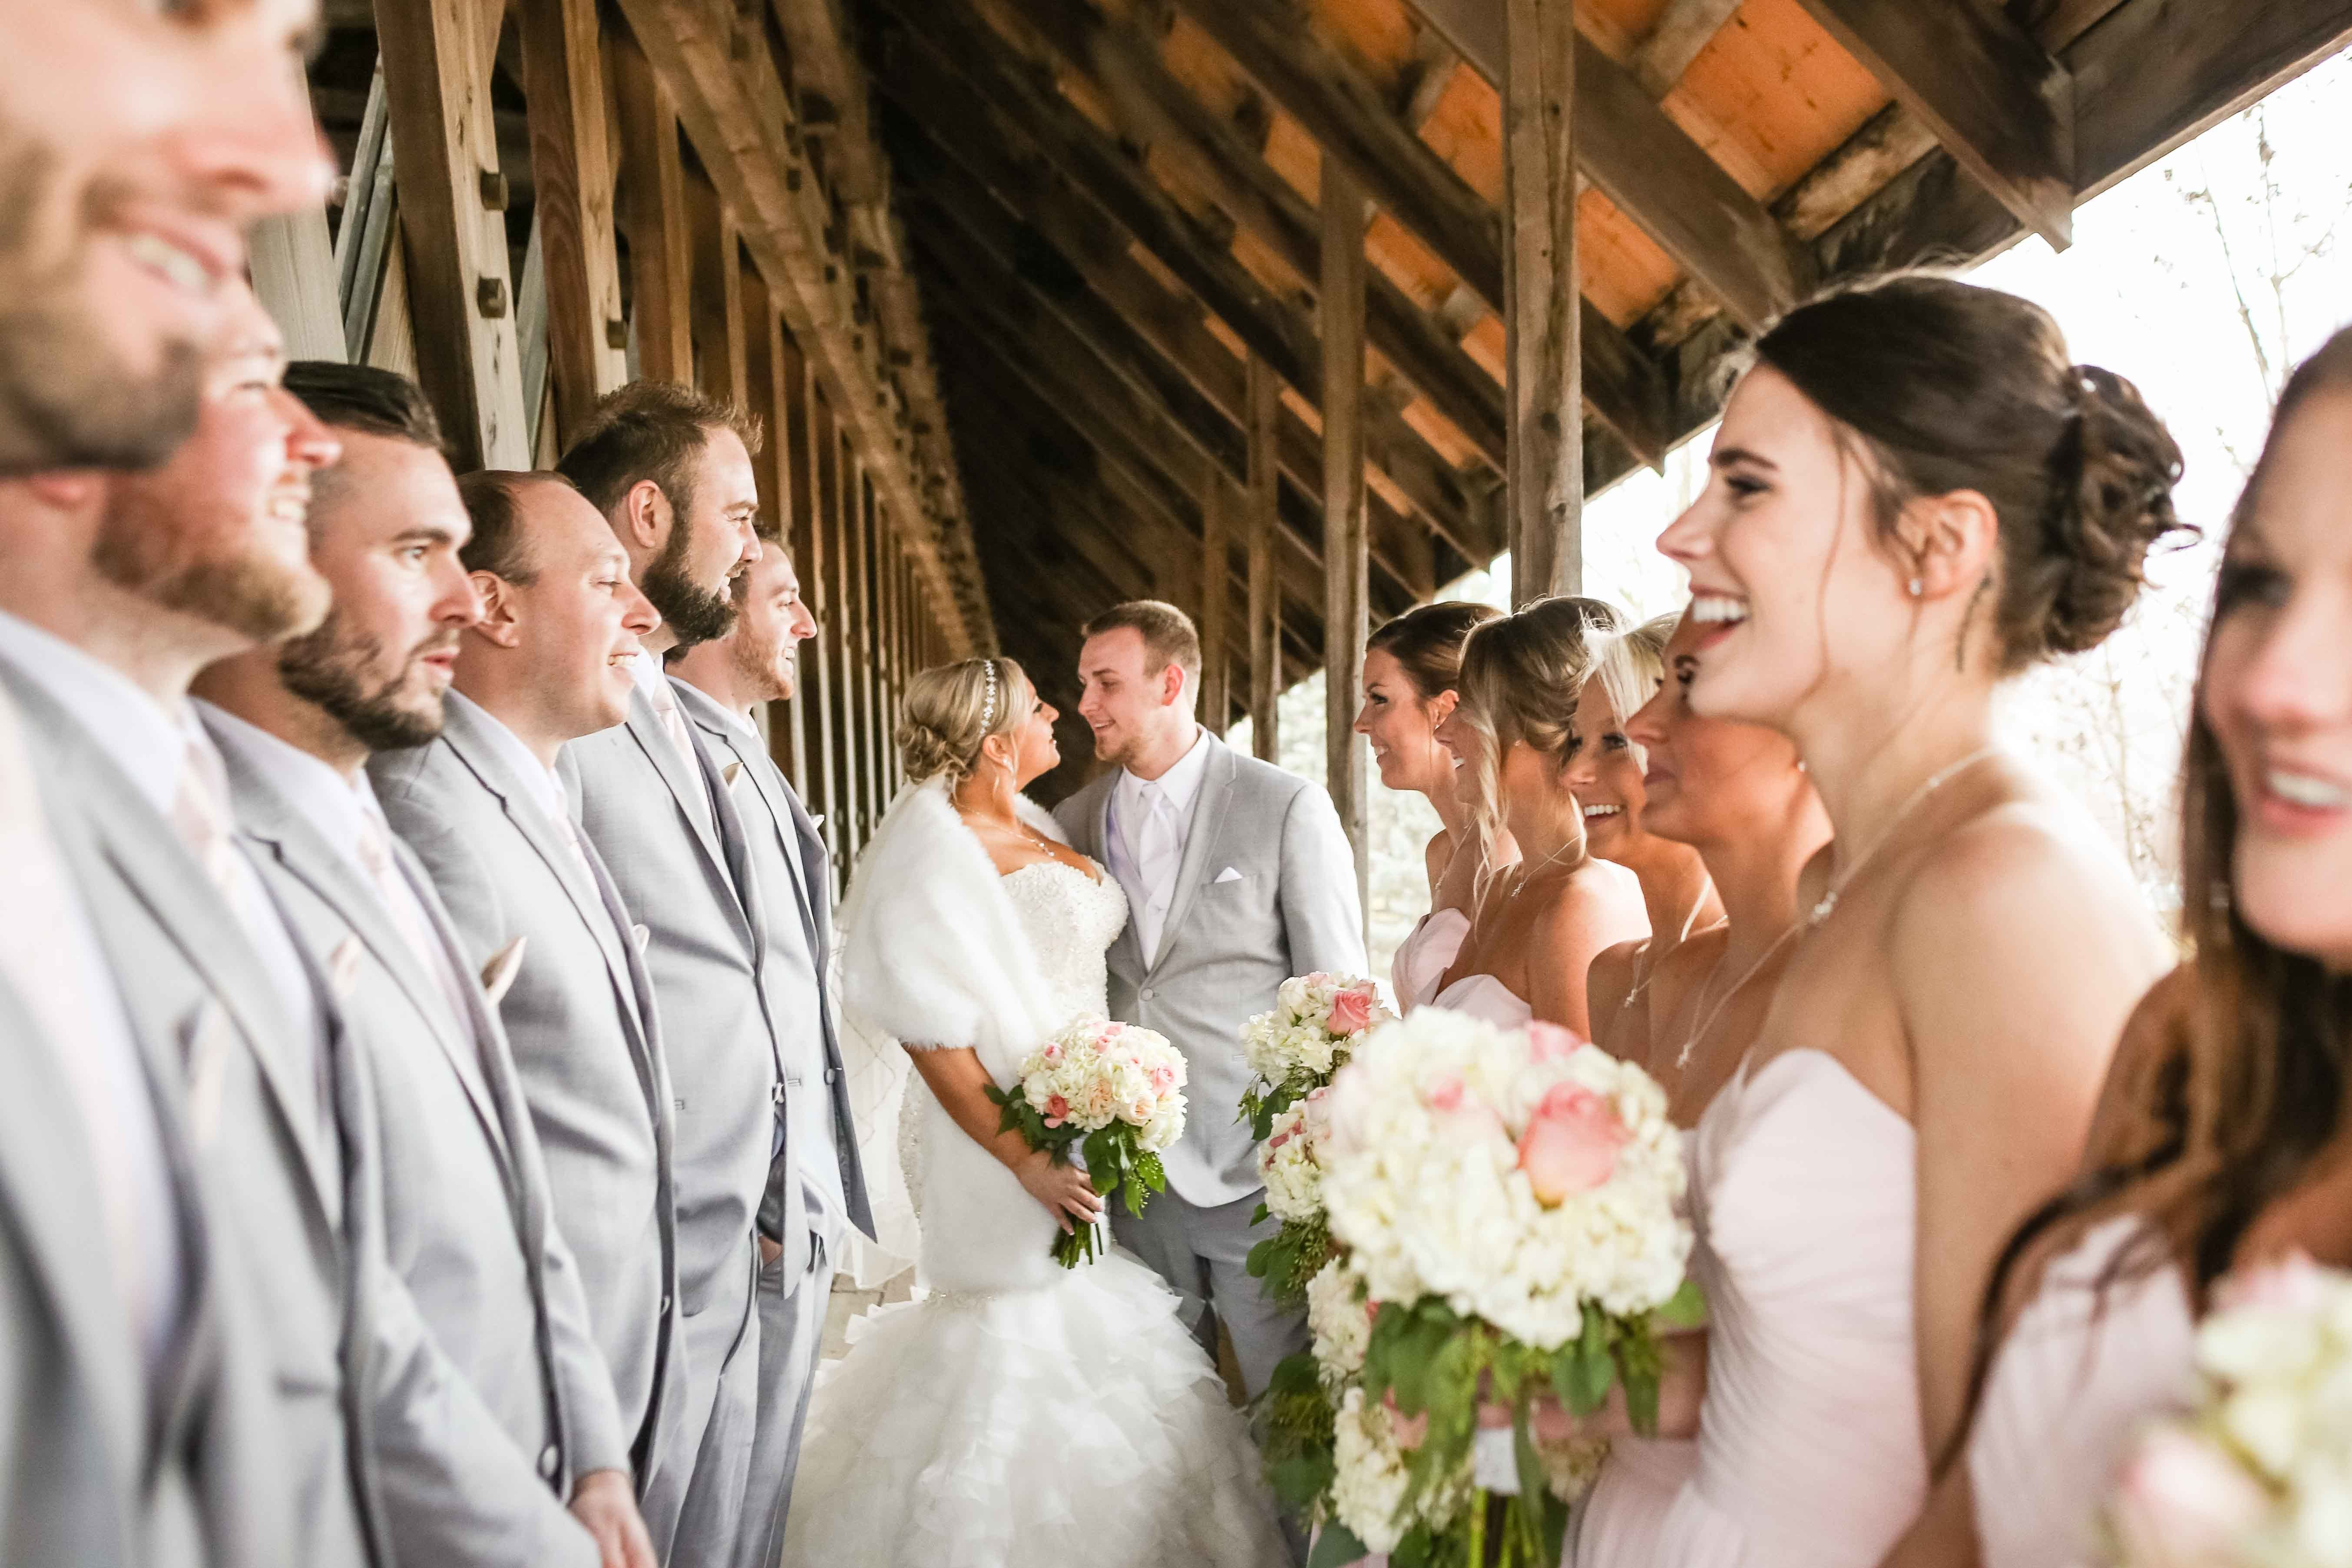 Wedding Party Bridal Party Pictures Bride And Groom Bridesmaids Groomsmen Posin Bridal Party Groomsmen Wedding Parties Pictures Wedding Photography Styles